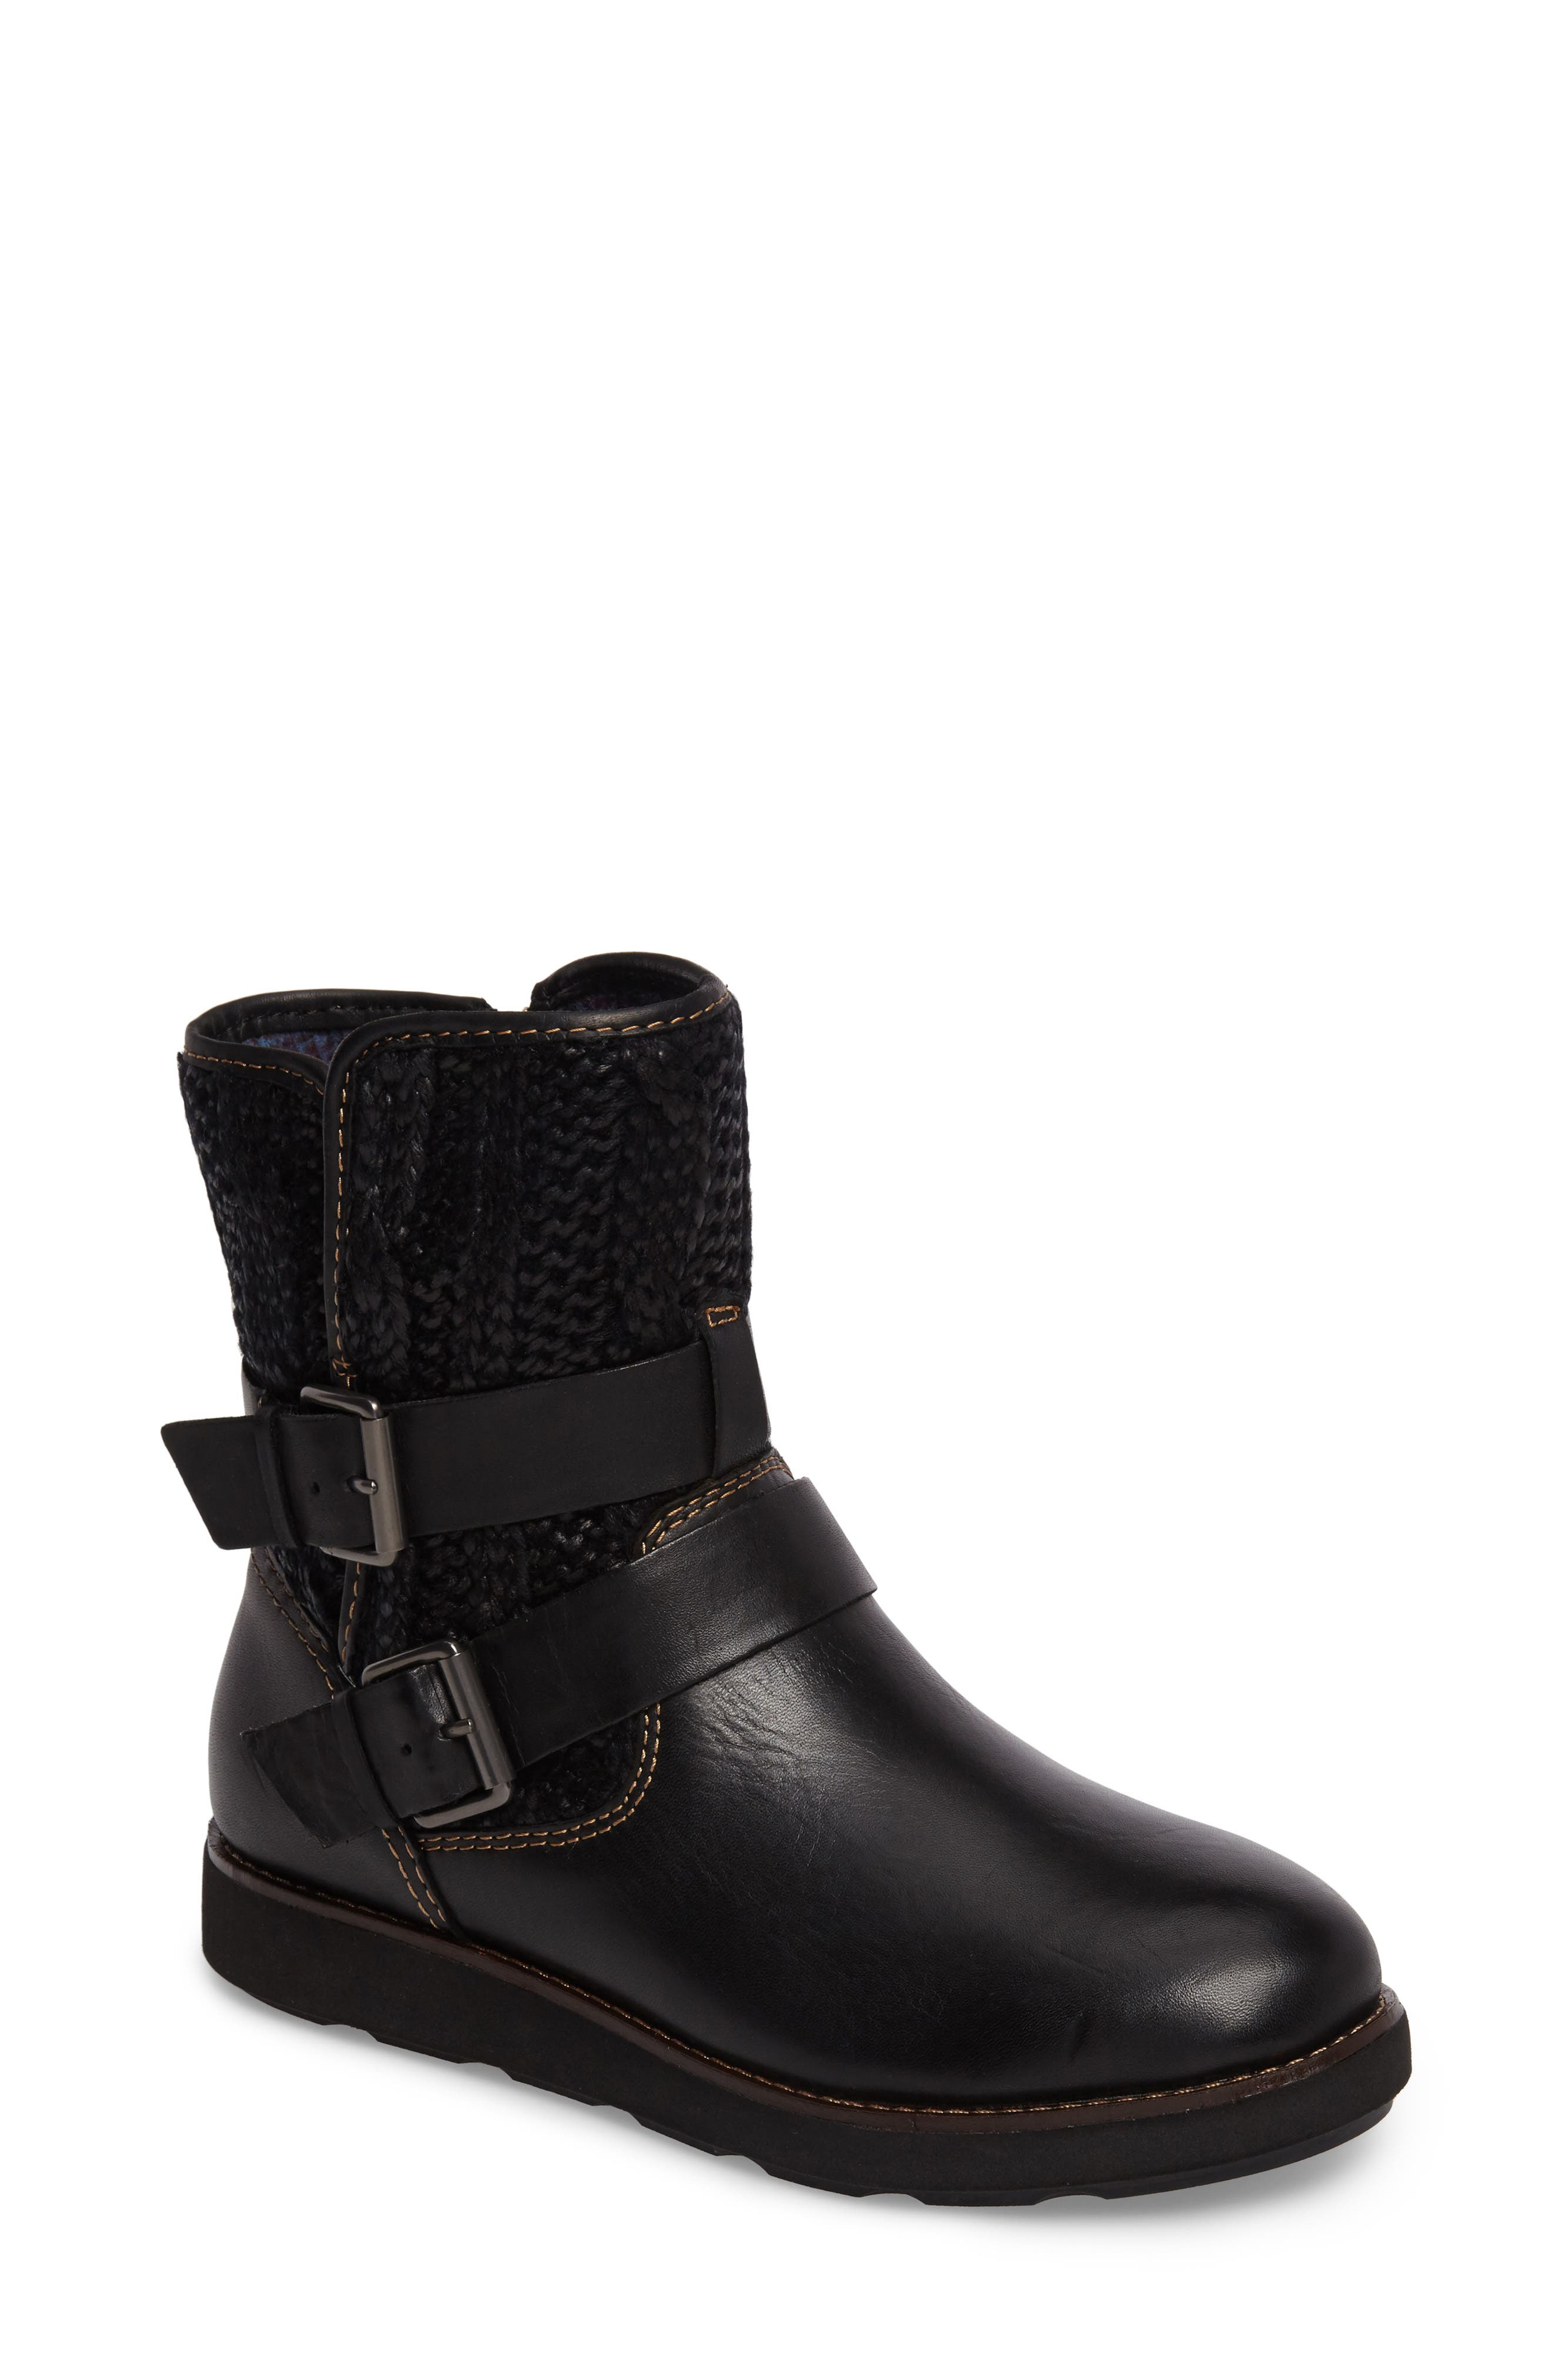 Nordic Boot,                         Main,                         color, Black Leather